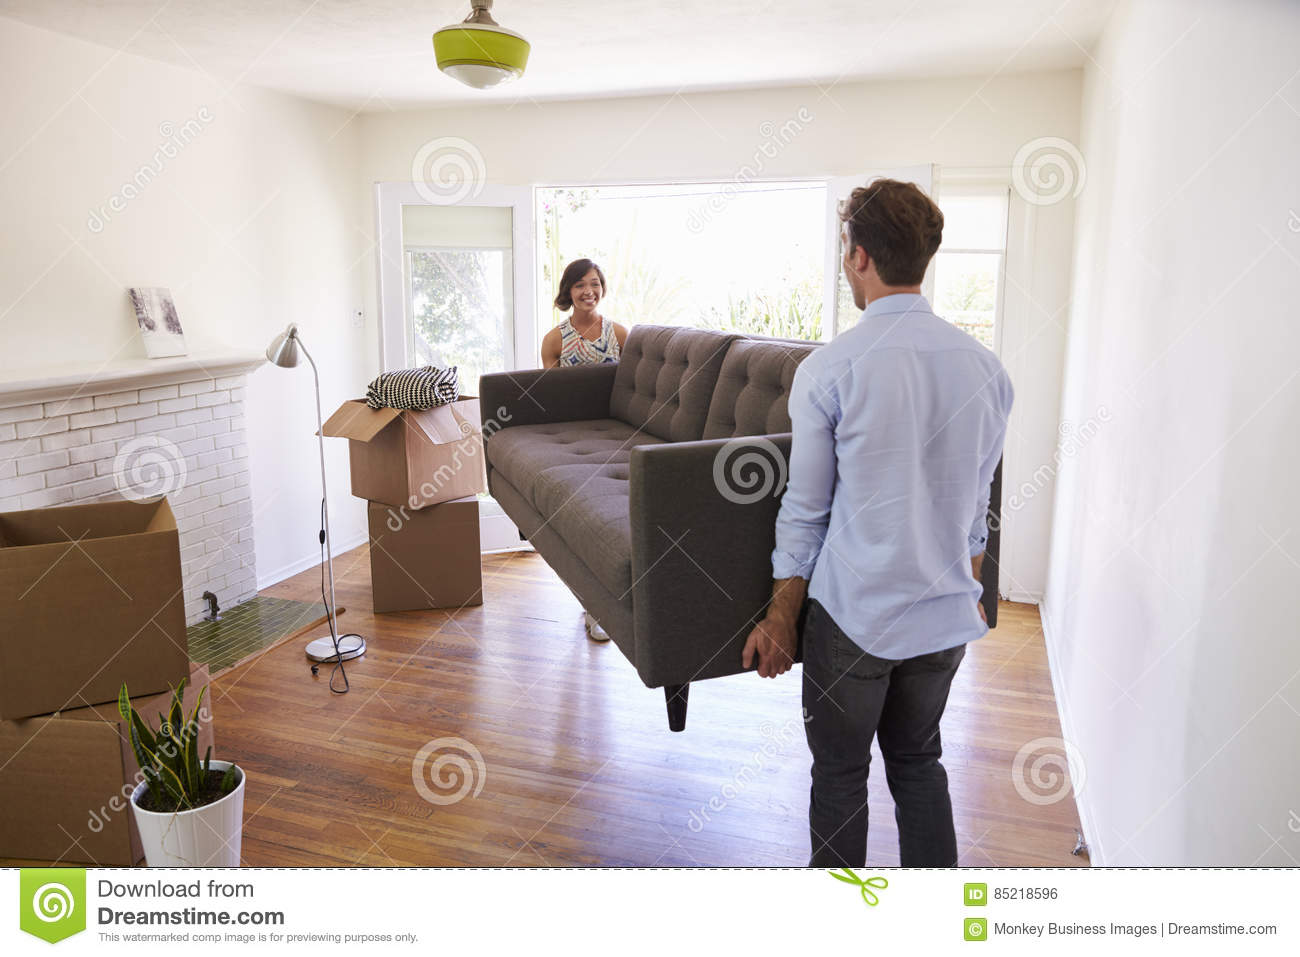 Moving day couple with their stuff inside the cardboard When is the best time to move house